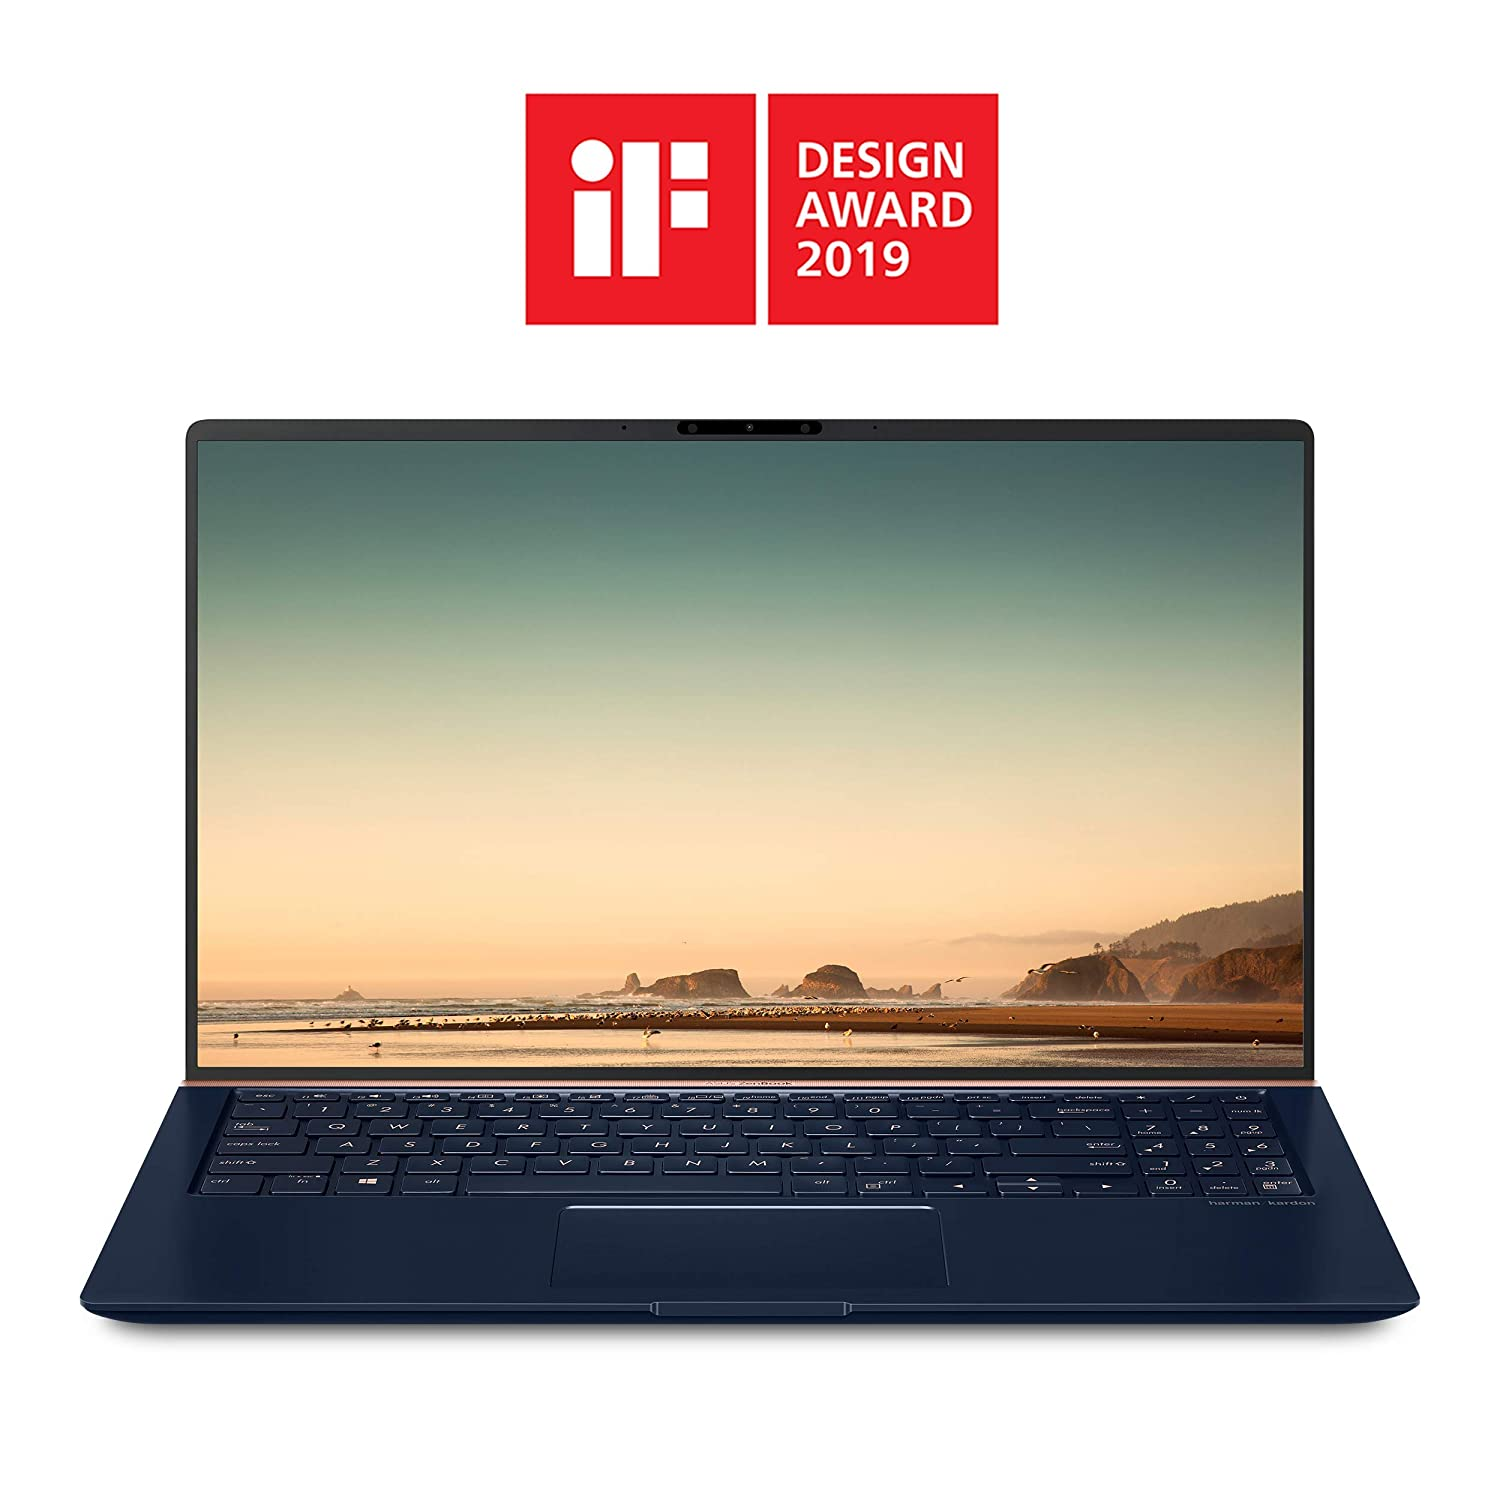 ASUS ZenBook 15 Laptop 15.6 inches FHD 4-Way Narrow Bezel, Intel Core i7-8565U Up to 4.1GHz, 16GB DDR4, 512GB PCIe SSD, GTX 1050 Max-Q, IR Camera, Windows 10 - UX533FD-DH74, Royal Blue (Renewed)